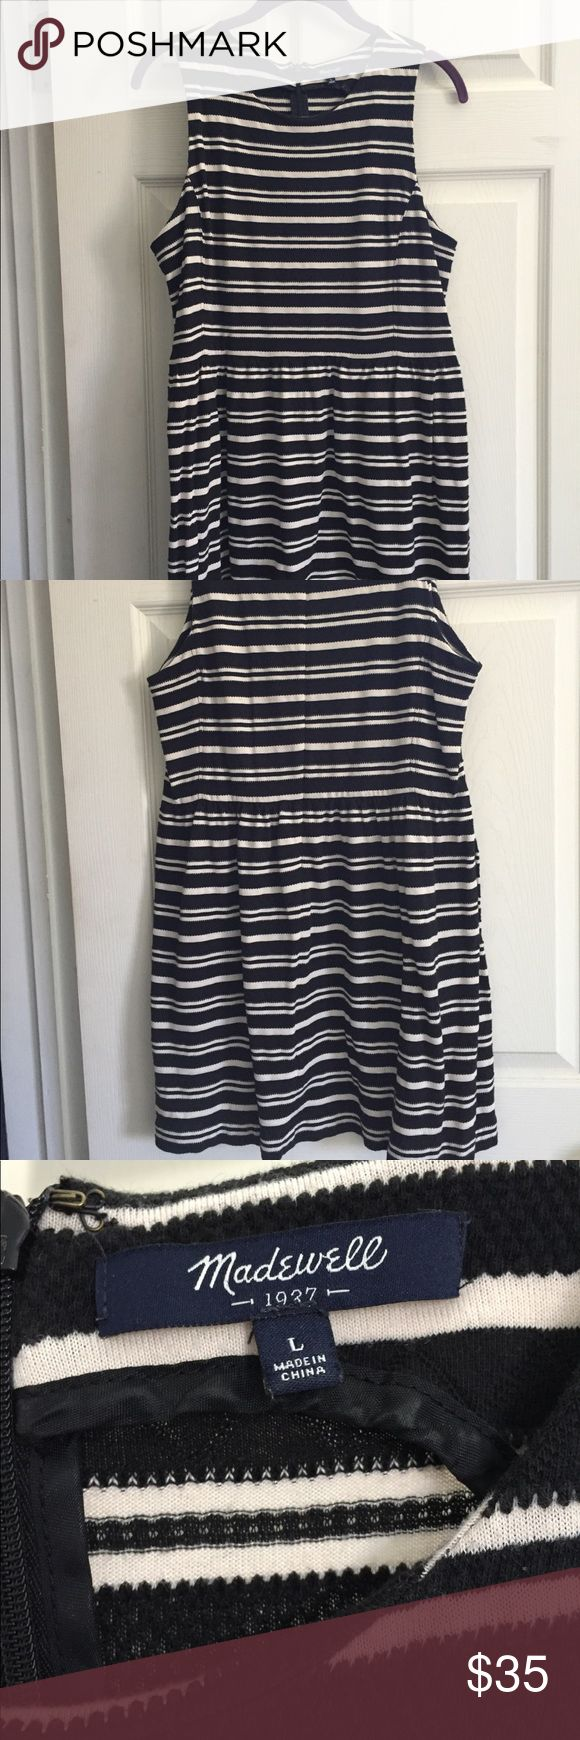 Madewell Striped Dress Black and Cream colored striped short dress in great condition. Madewell Dresses